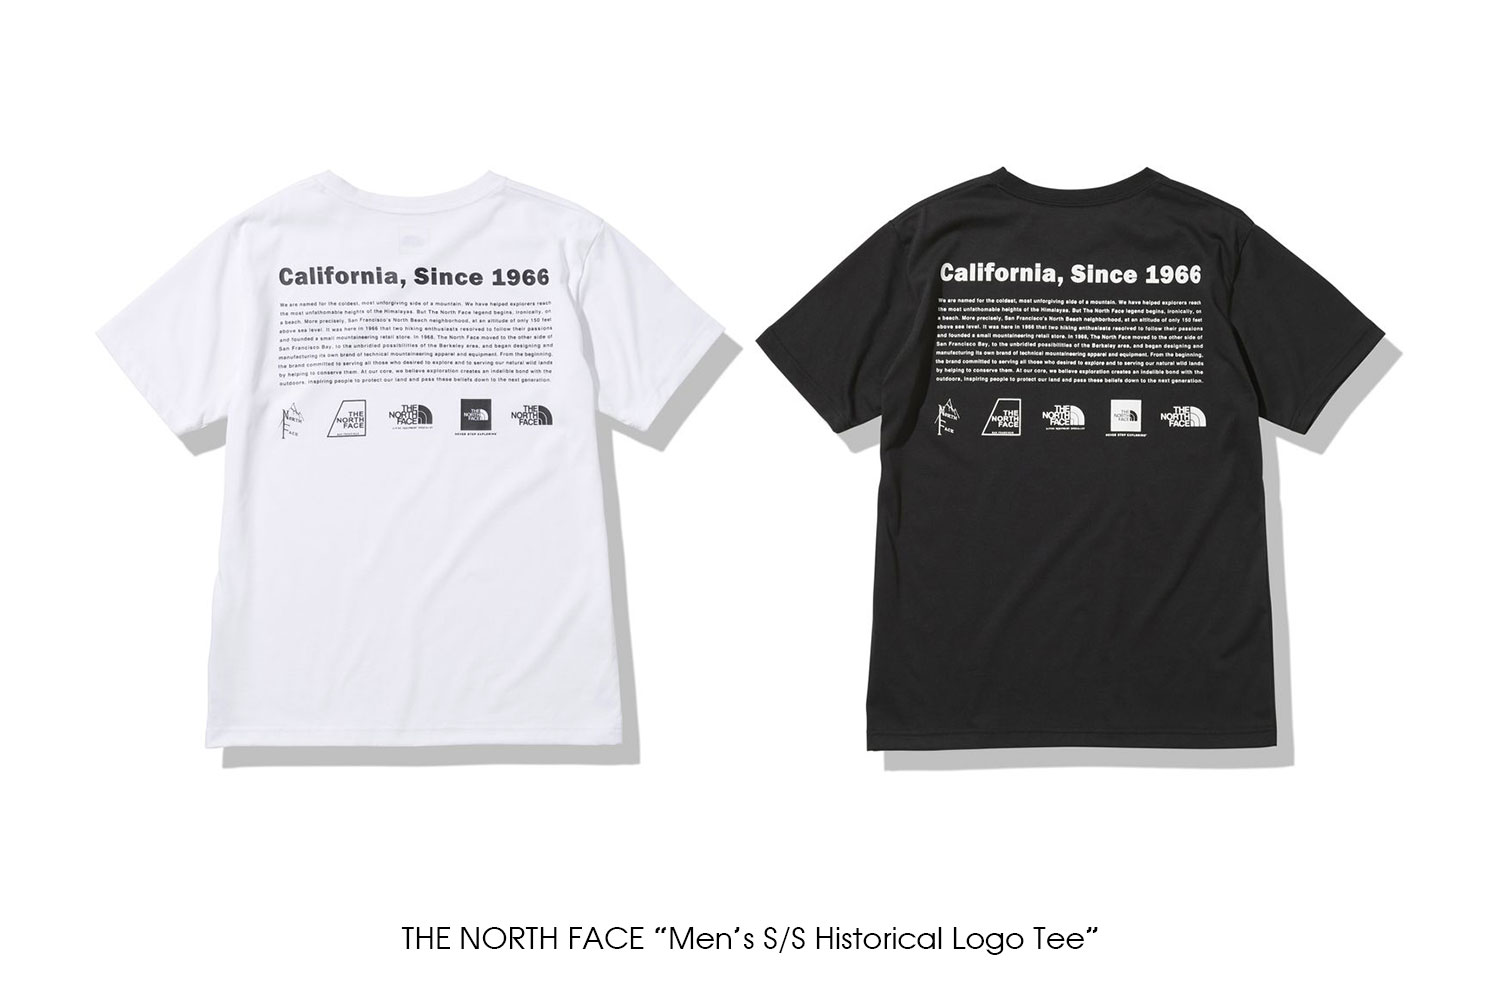 """THE NORTH FACE """"Men's S/S Historical Logo Tee"""""""